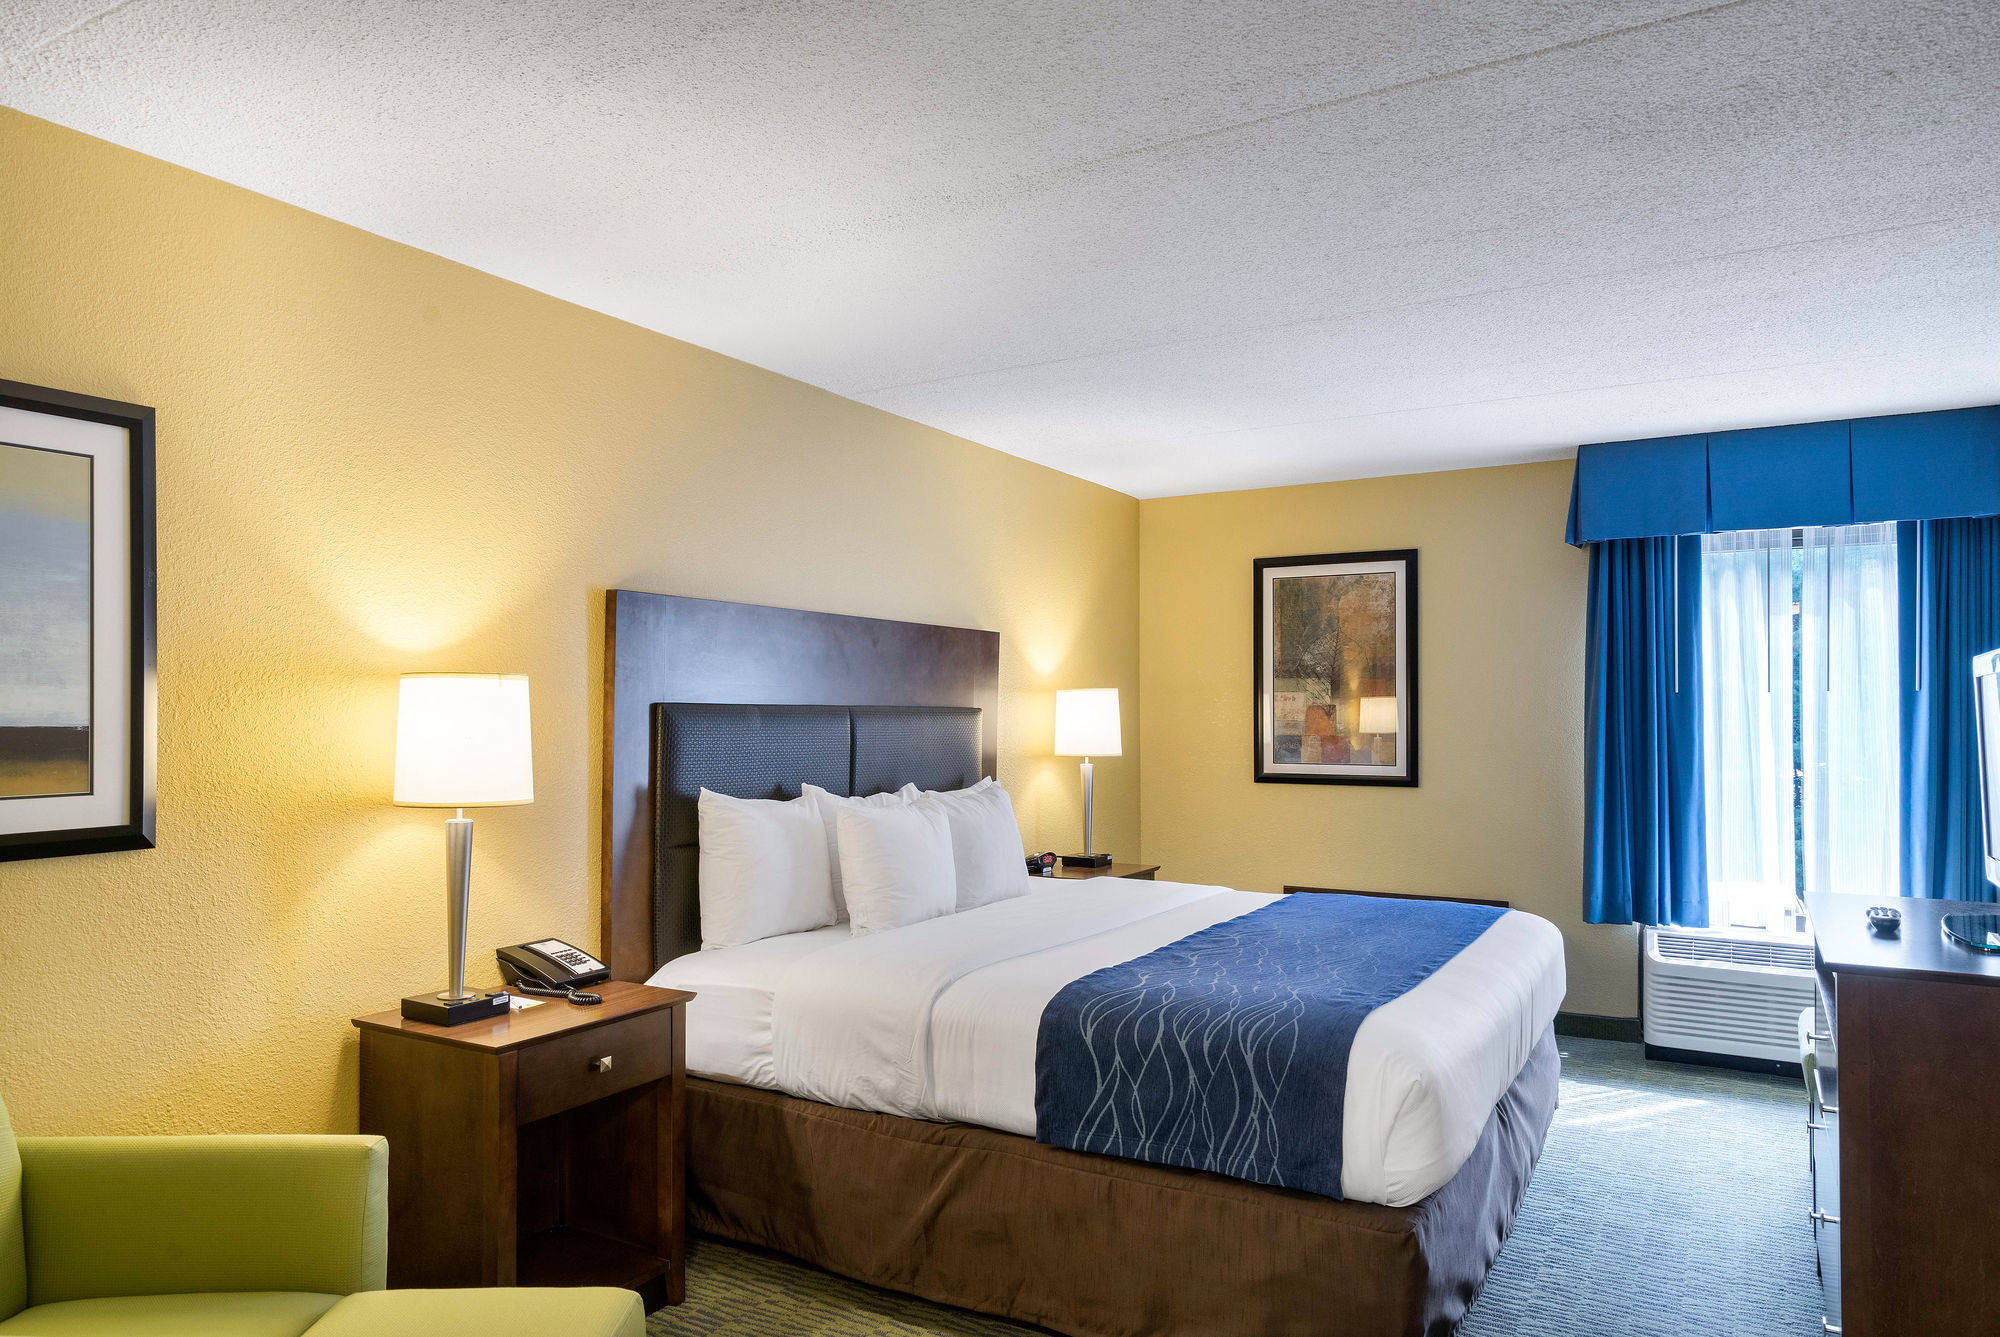 Comfort Inn & Suites Newark - Wilmington in Newark, DE